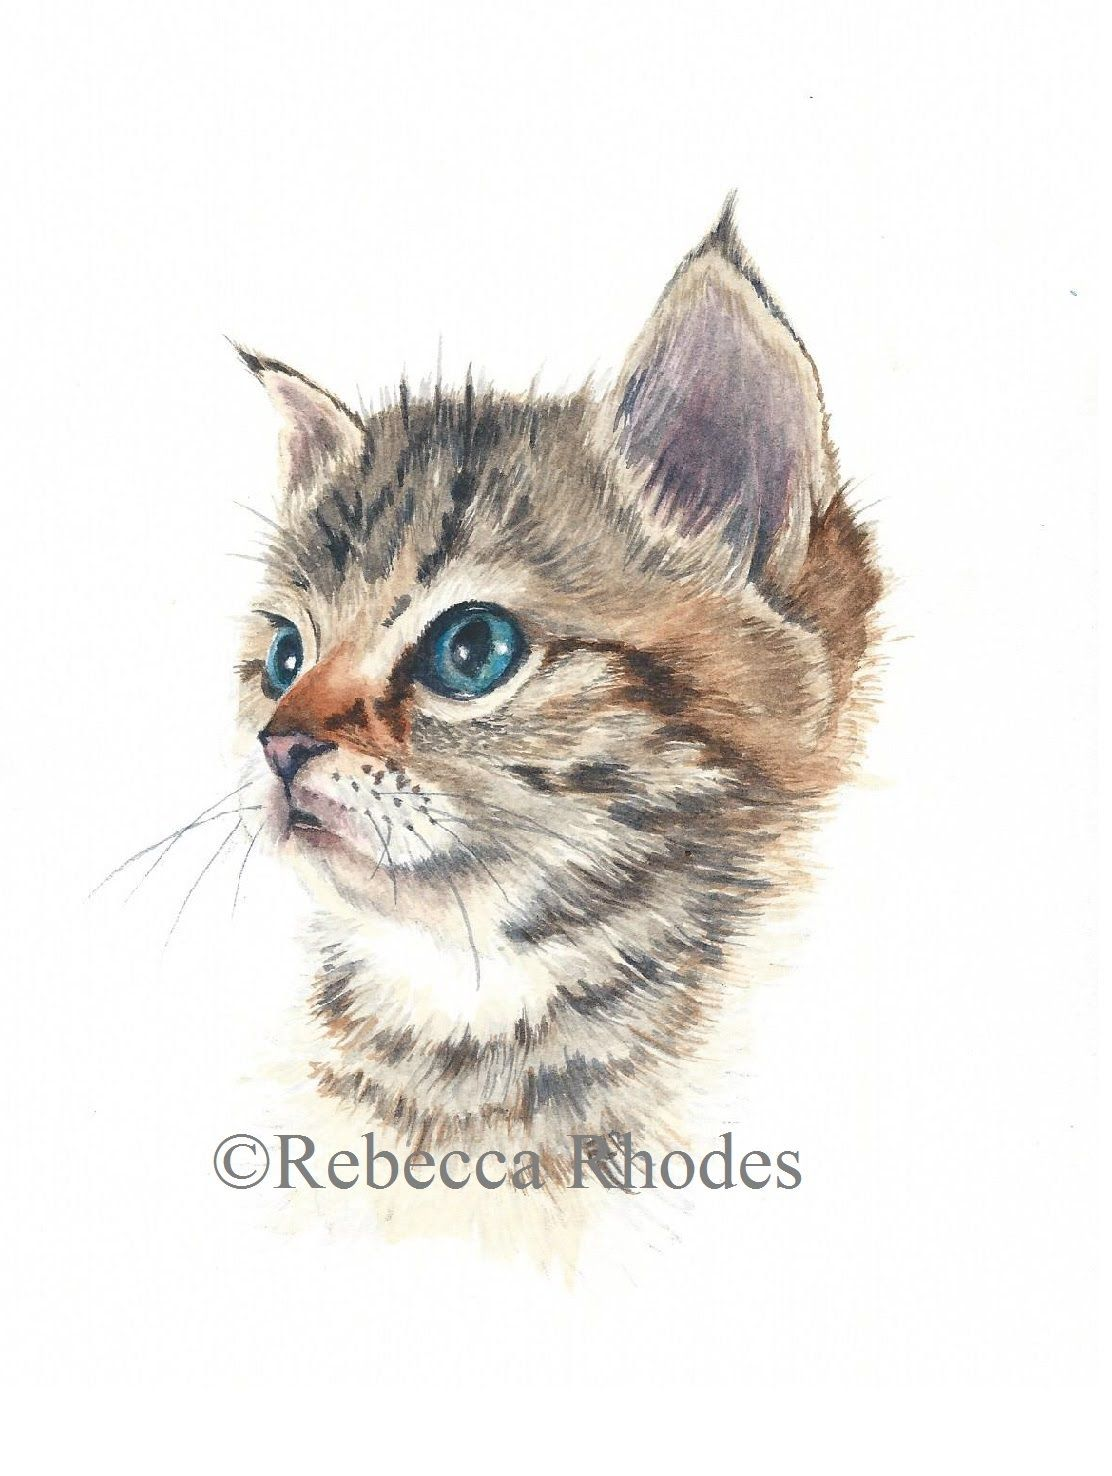 In This Tutorial You Will Learn How To Paint A Cute Kitten In Wat